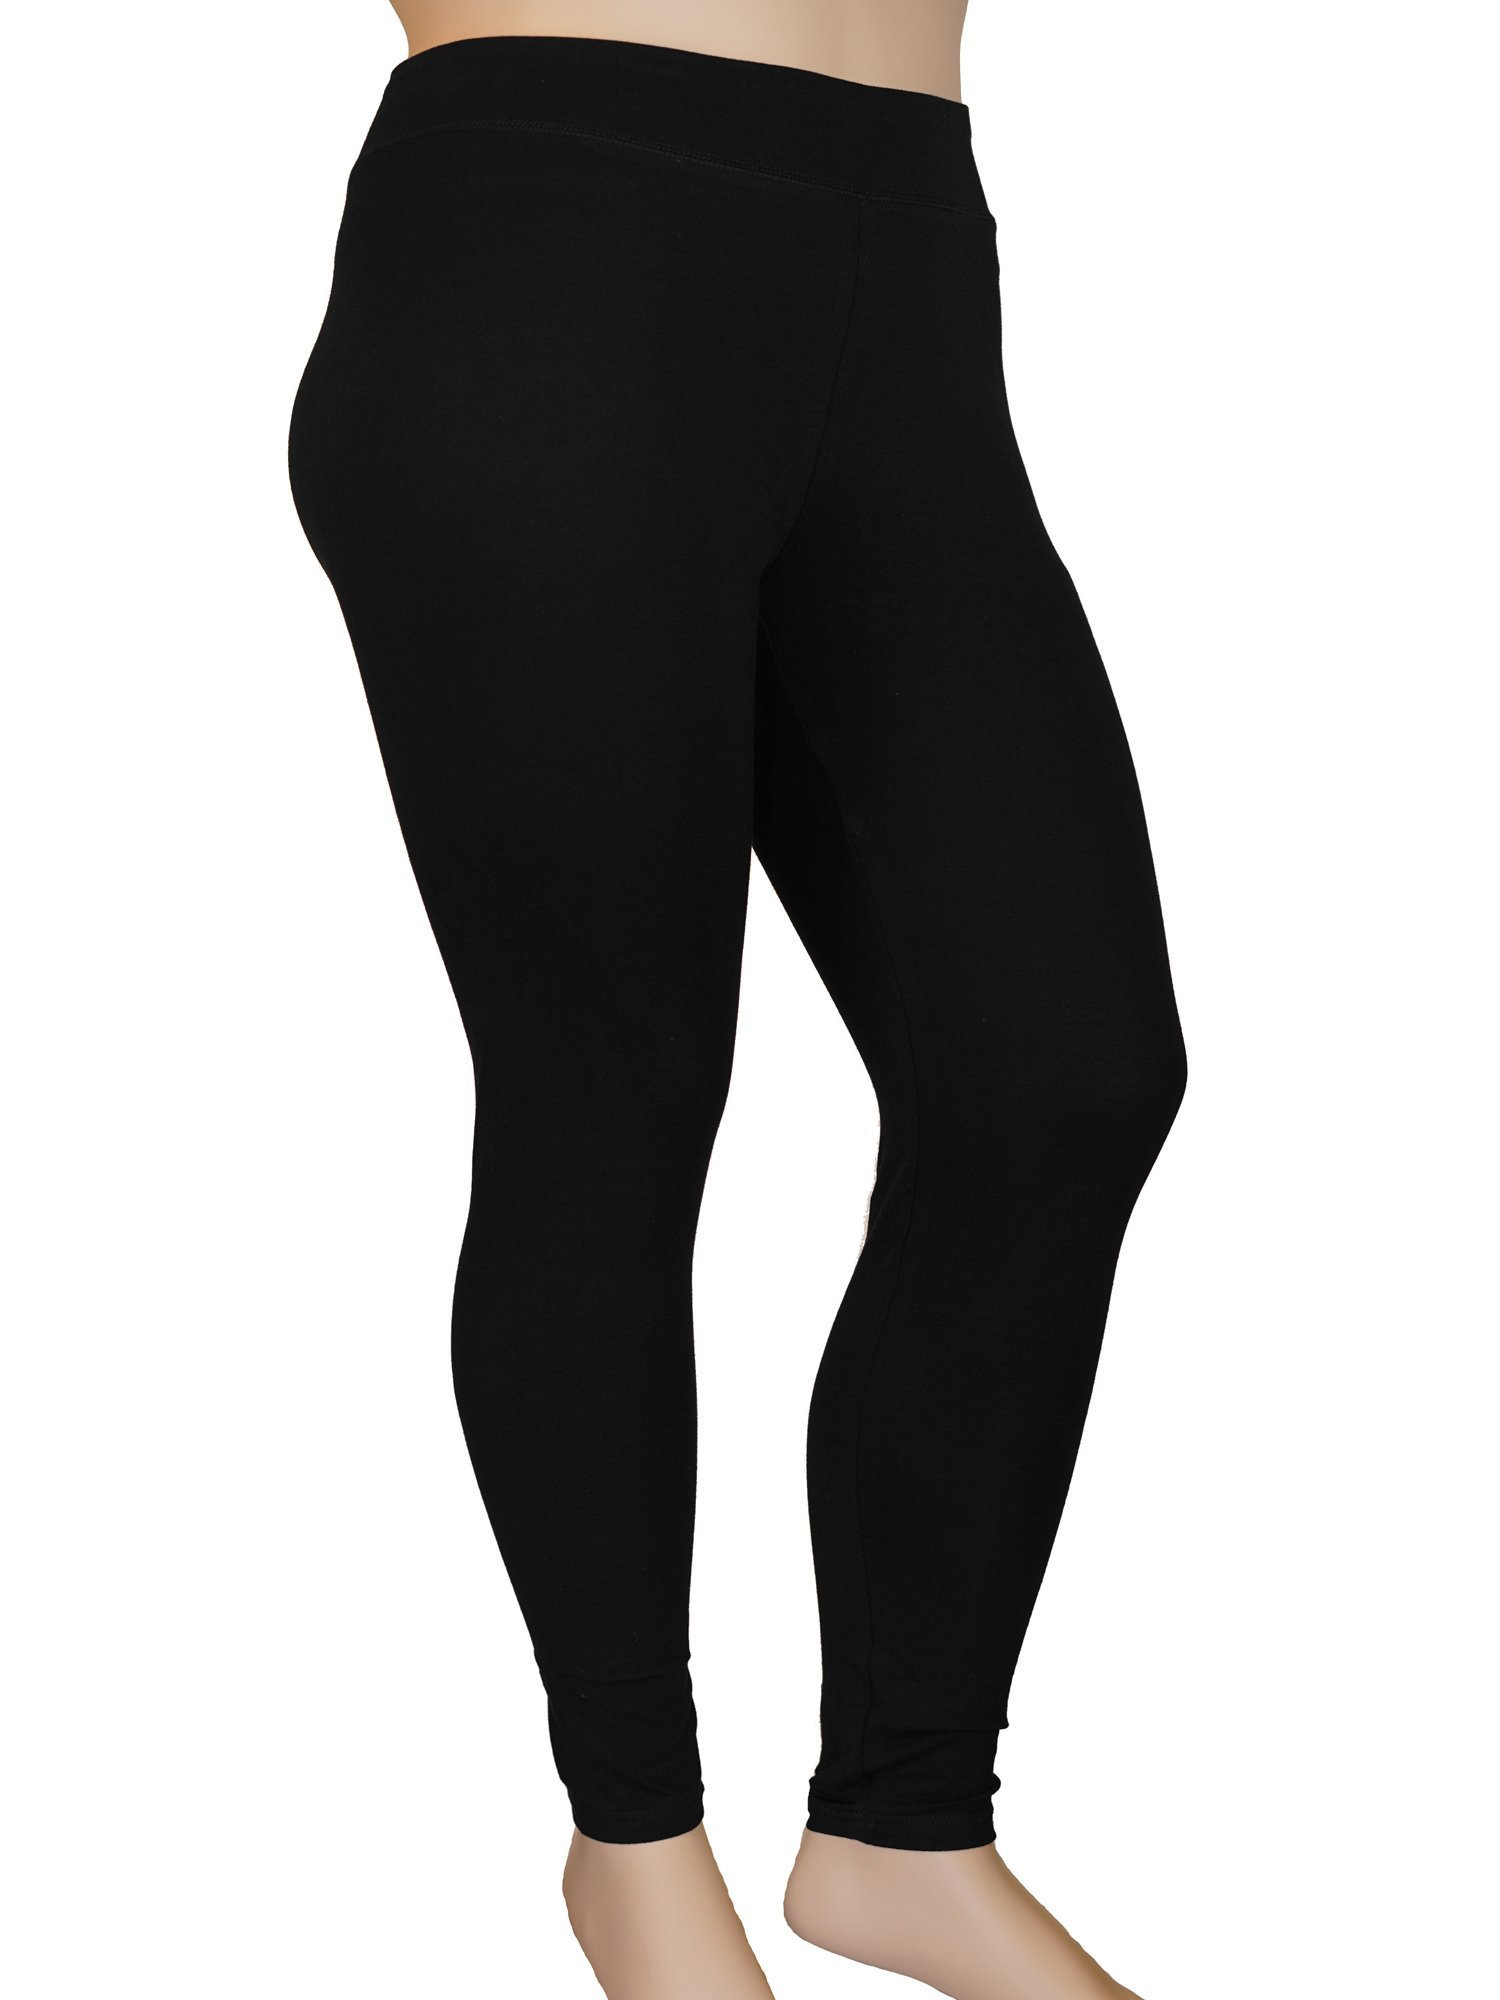 Stylzoo Women's Plus Size Comfy Stretch Ankle Length Leggings Yoga Stretch Pants Black 3X